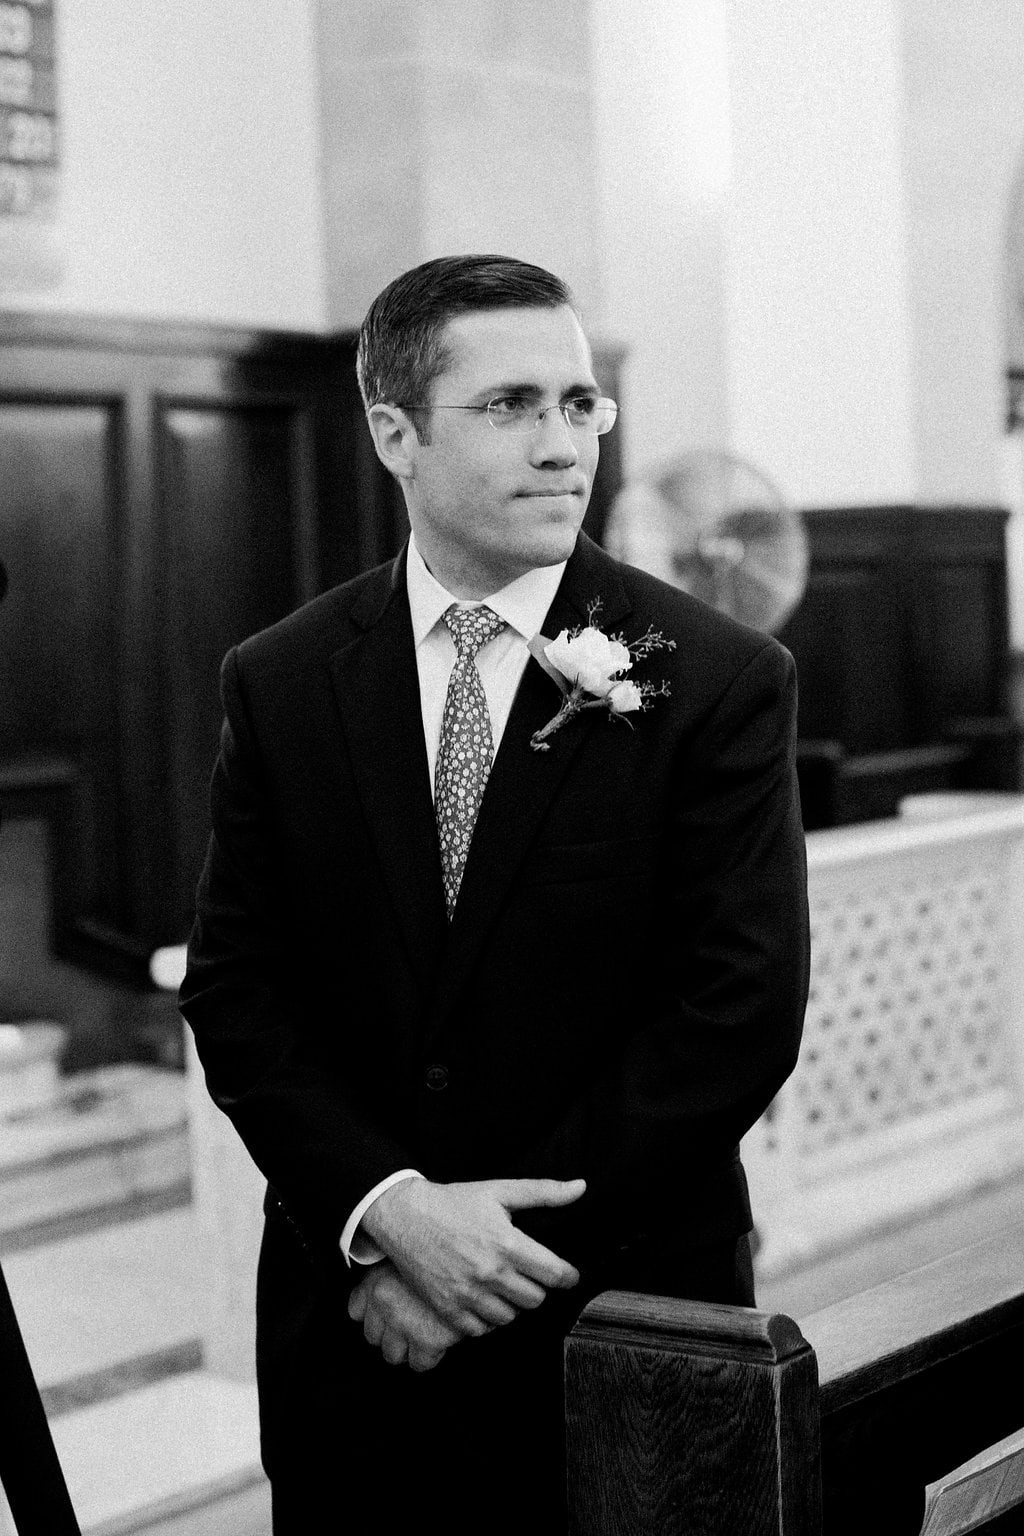 Groom seeing the bride walk down the aisle for the first time in black and white photo - 1920's inspired wedding Grand Concourse